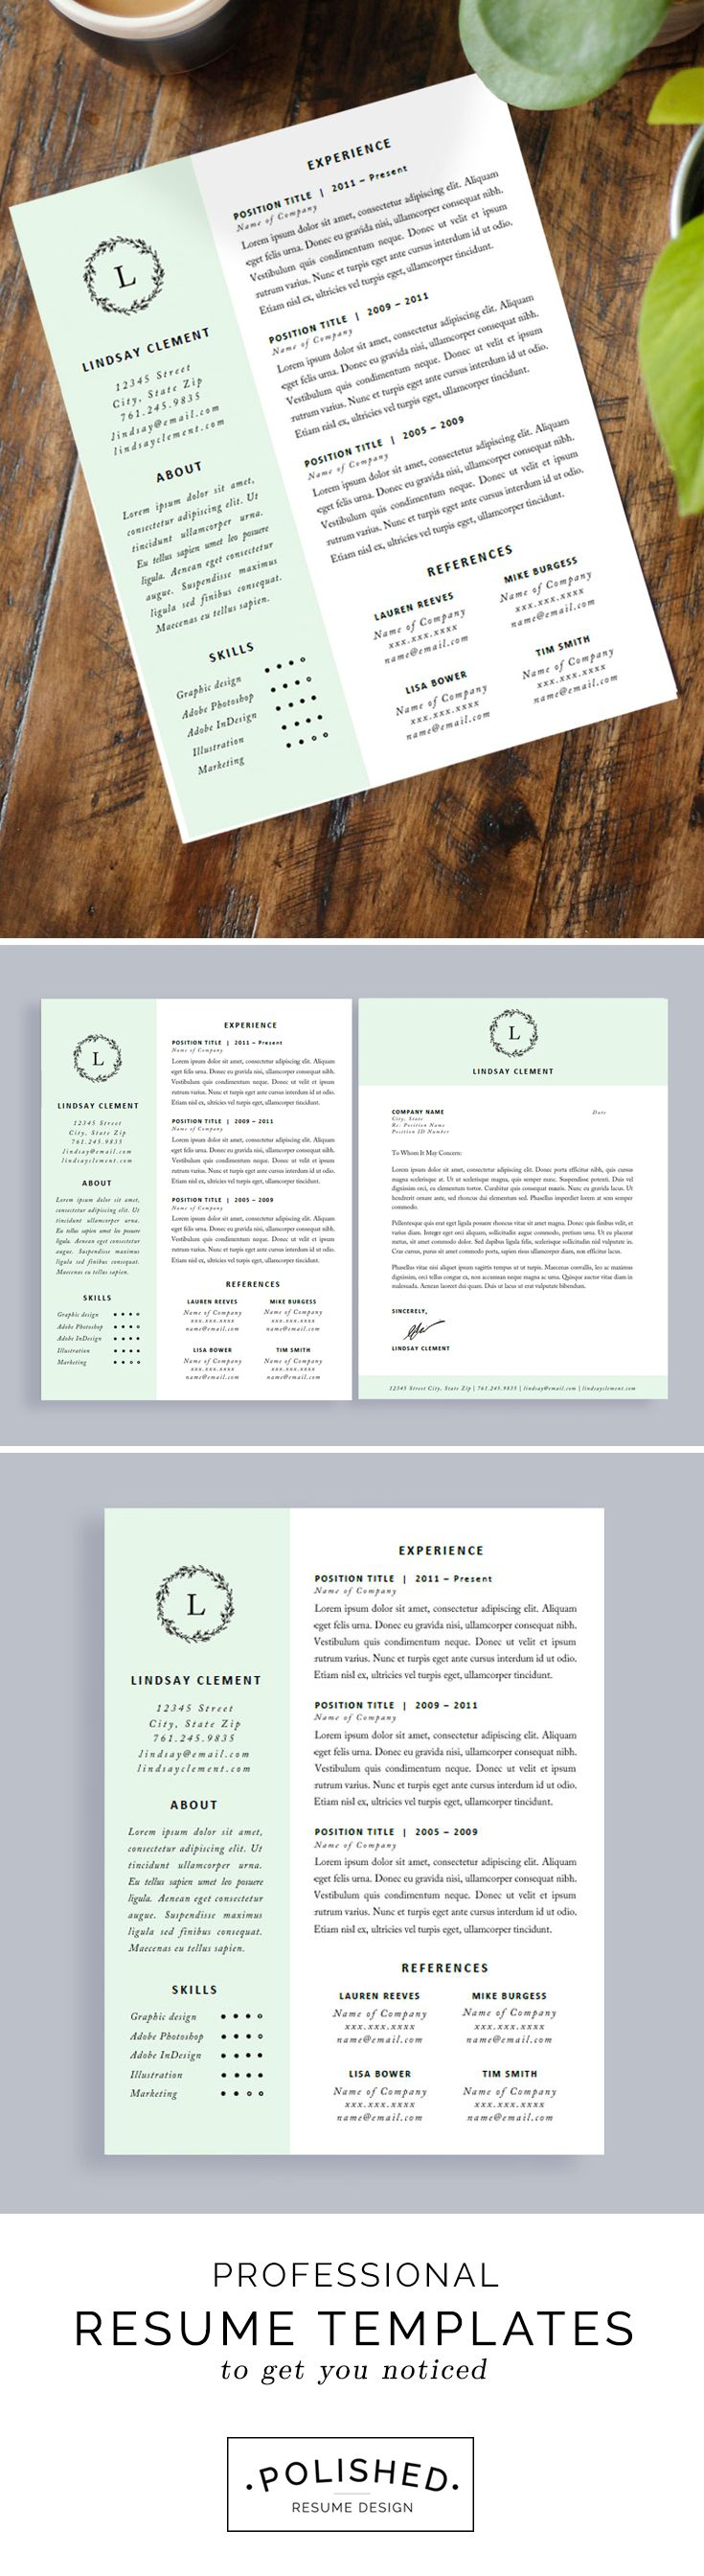 professional resume template and cover letter for word and pages one page instant download creative resume cv - Creative Resume Templates Free Word